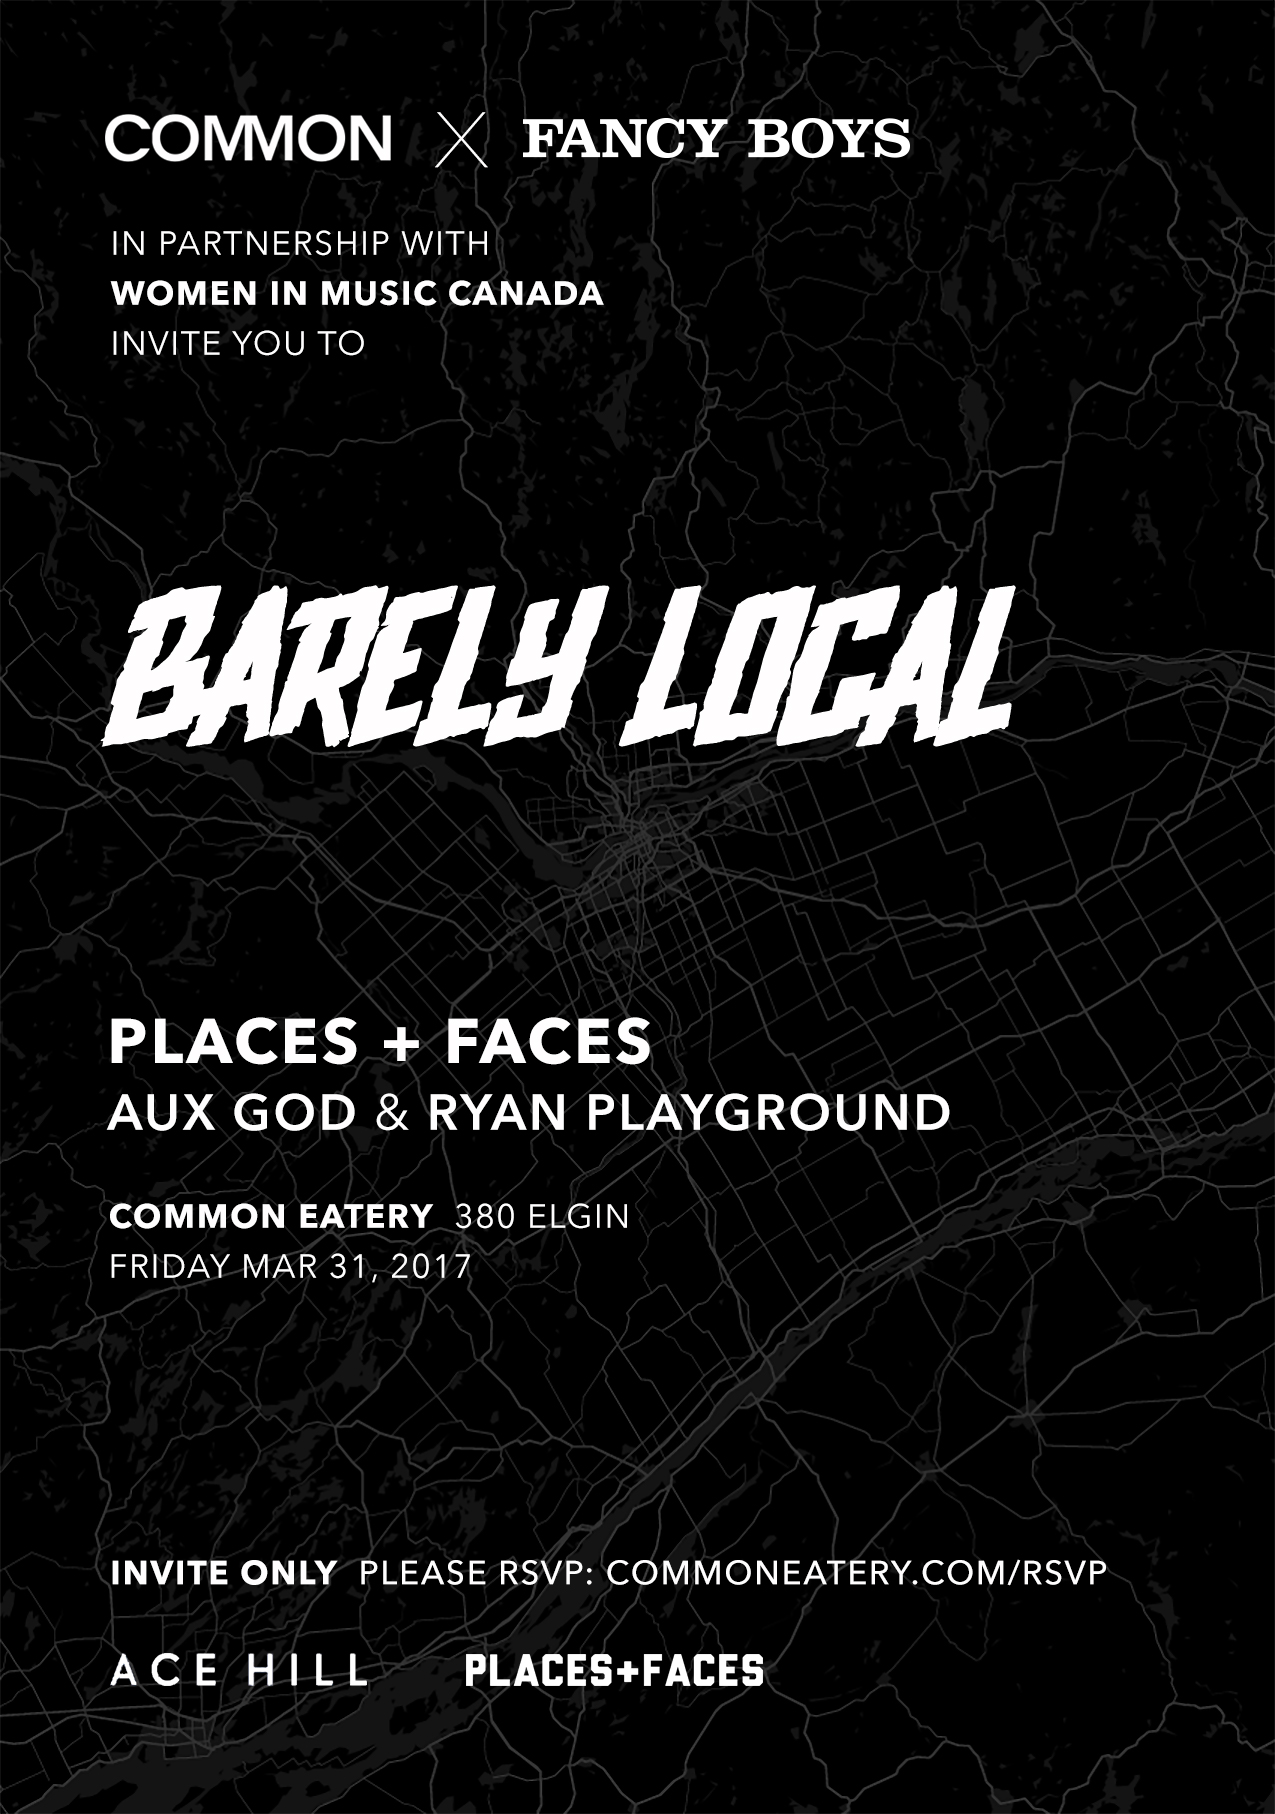 Barely Local Juno 2017 Party